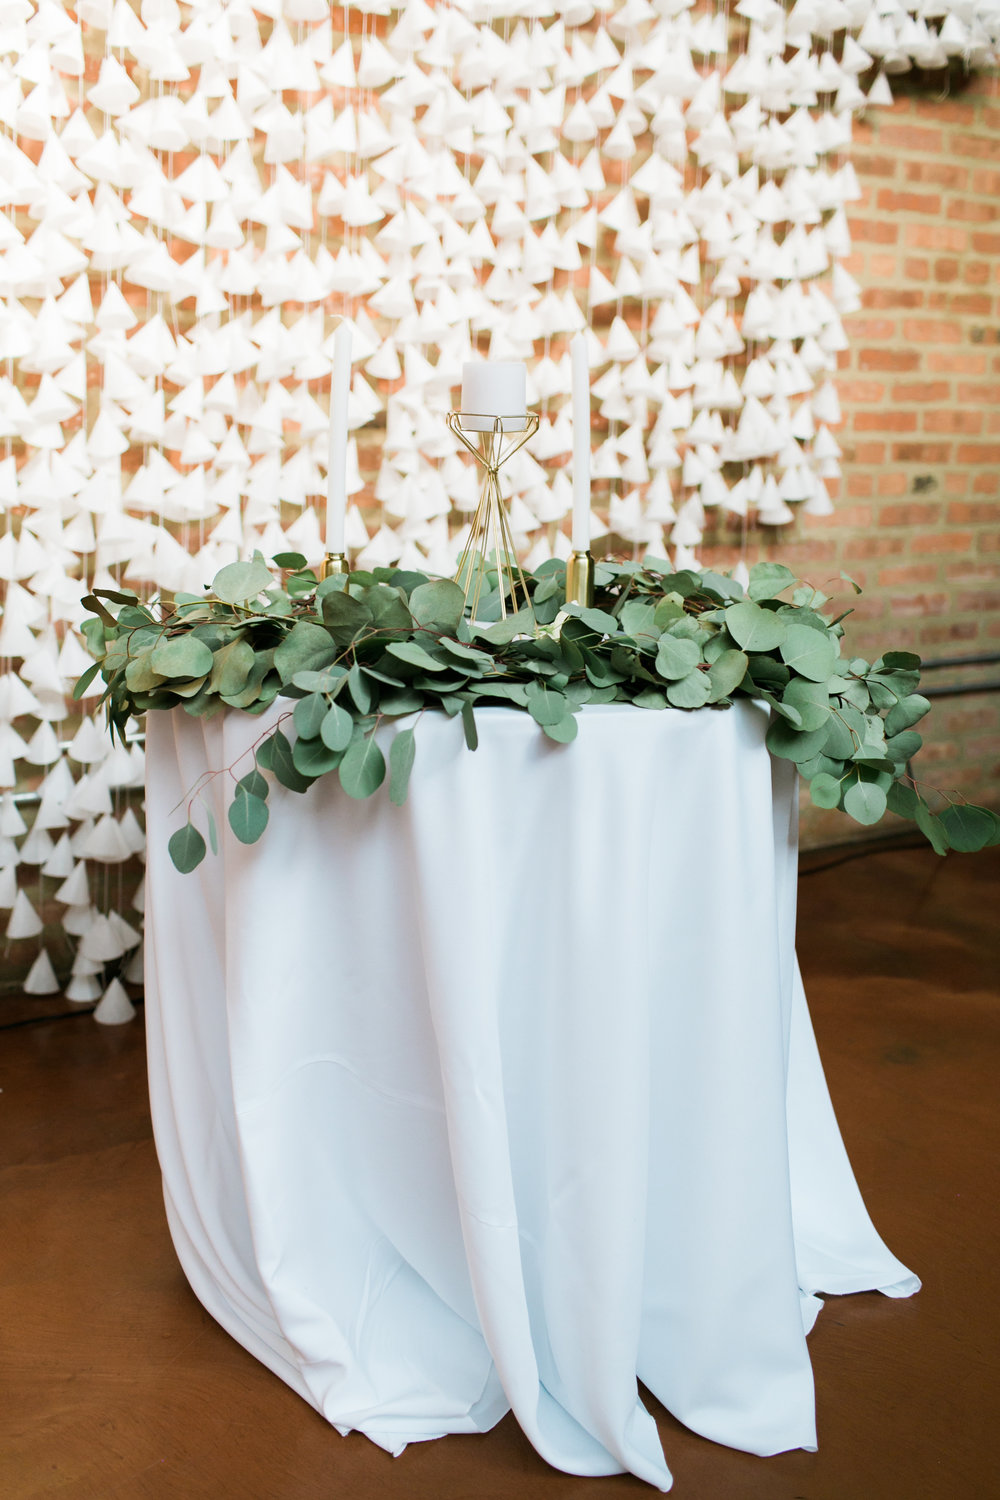 Decor and florals by Grace Niu, photo by  Mayden Photography